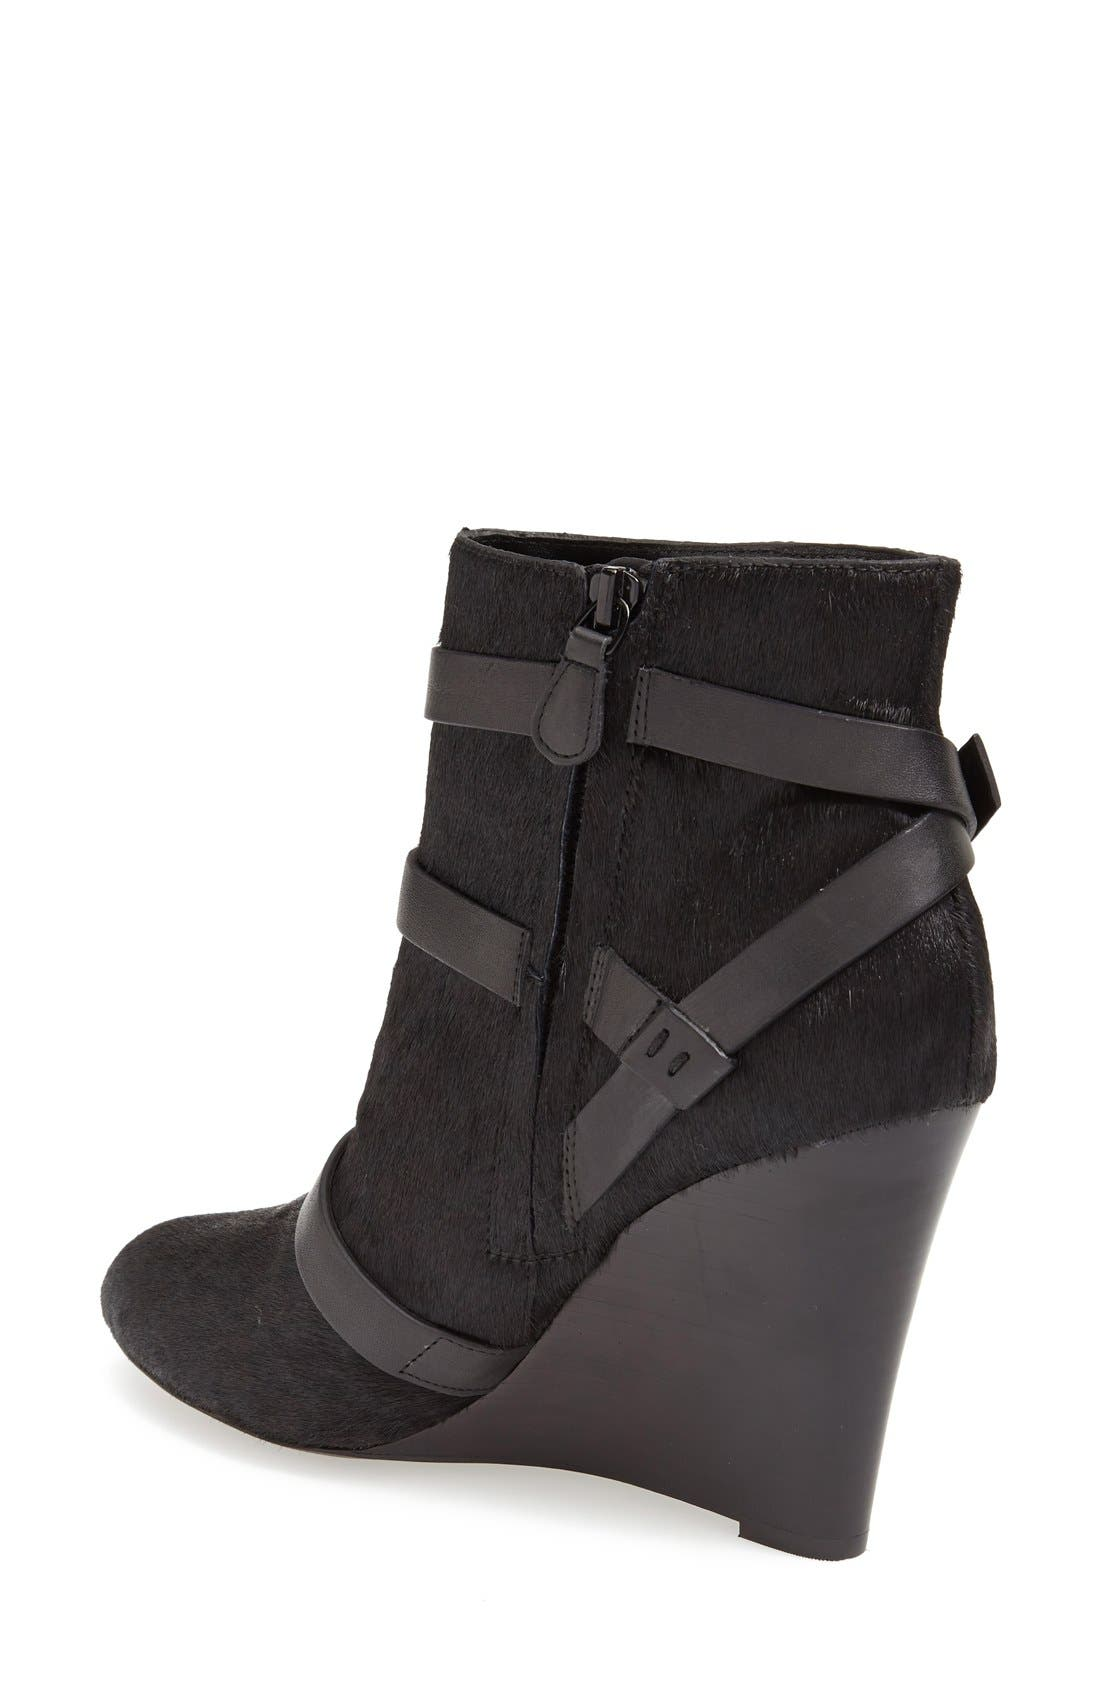 'Maggie' Wedge Bootie,                             Alternate thumbnail 2, color,                             524